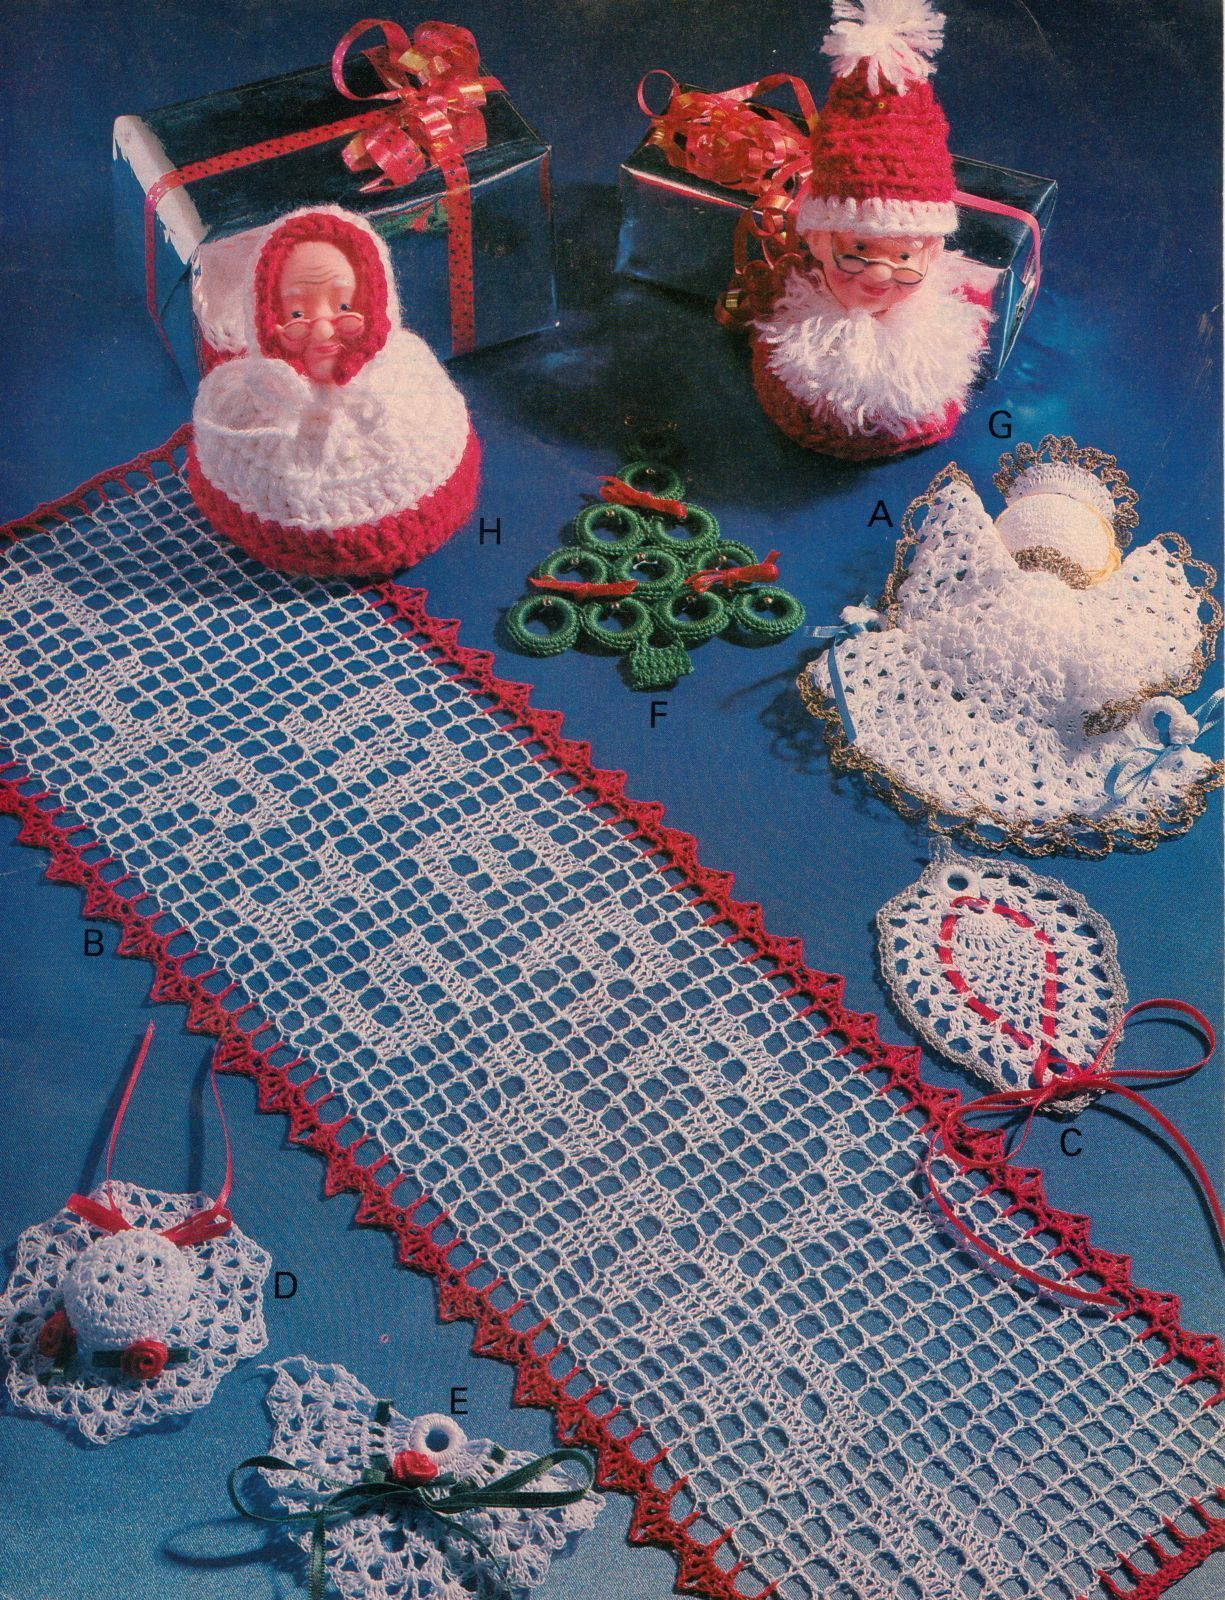 Primary image for Merry Xmas Doily Runner Ornaments Angels Bells Tree Santa Crochet Pattern